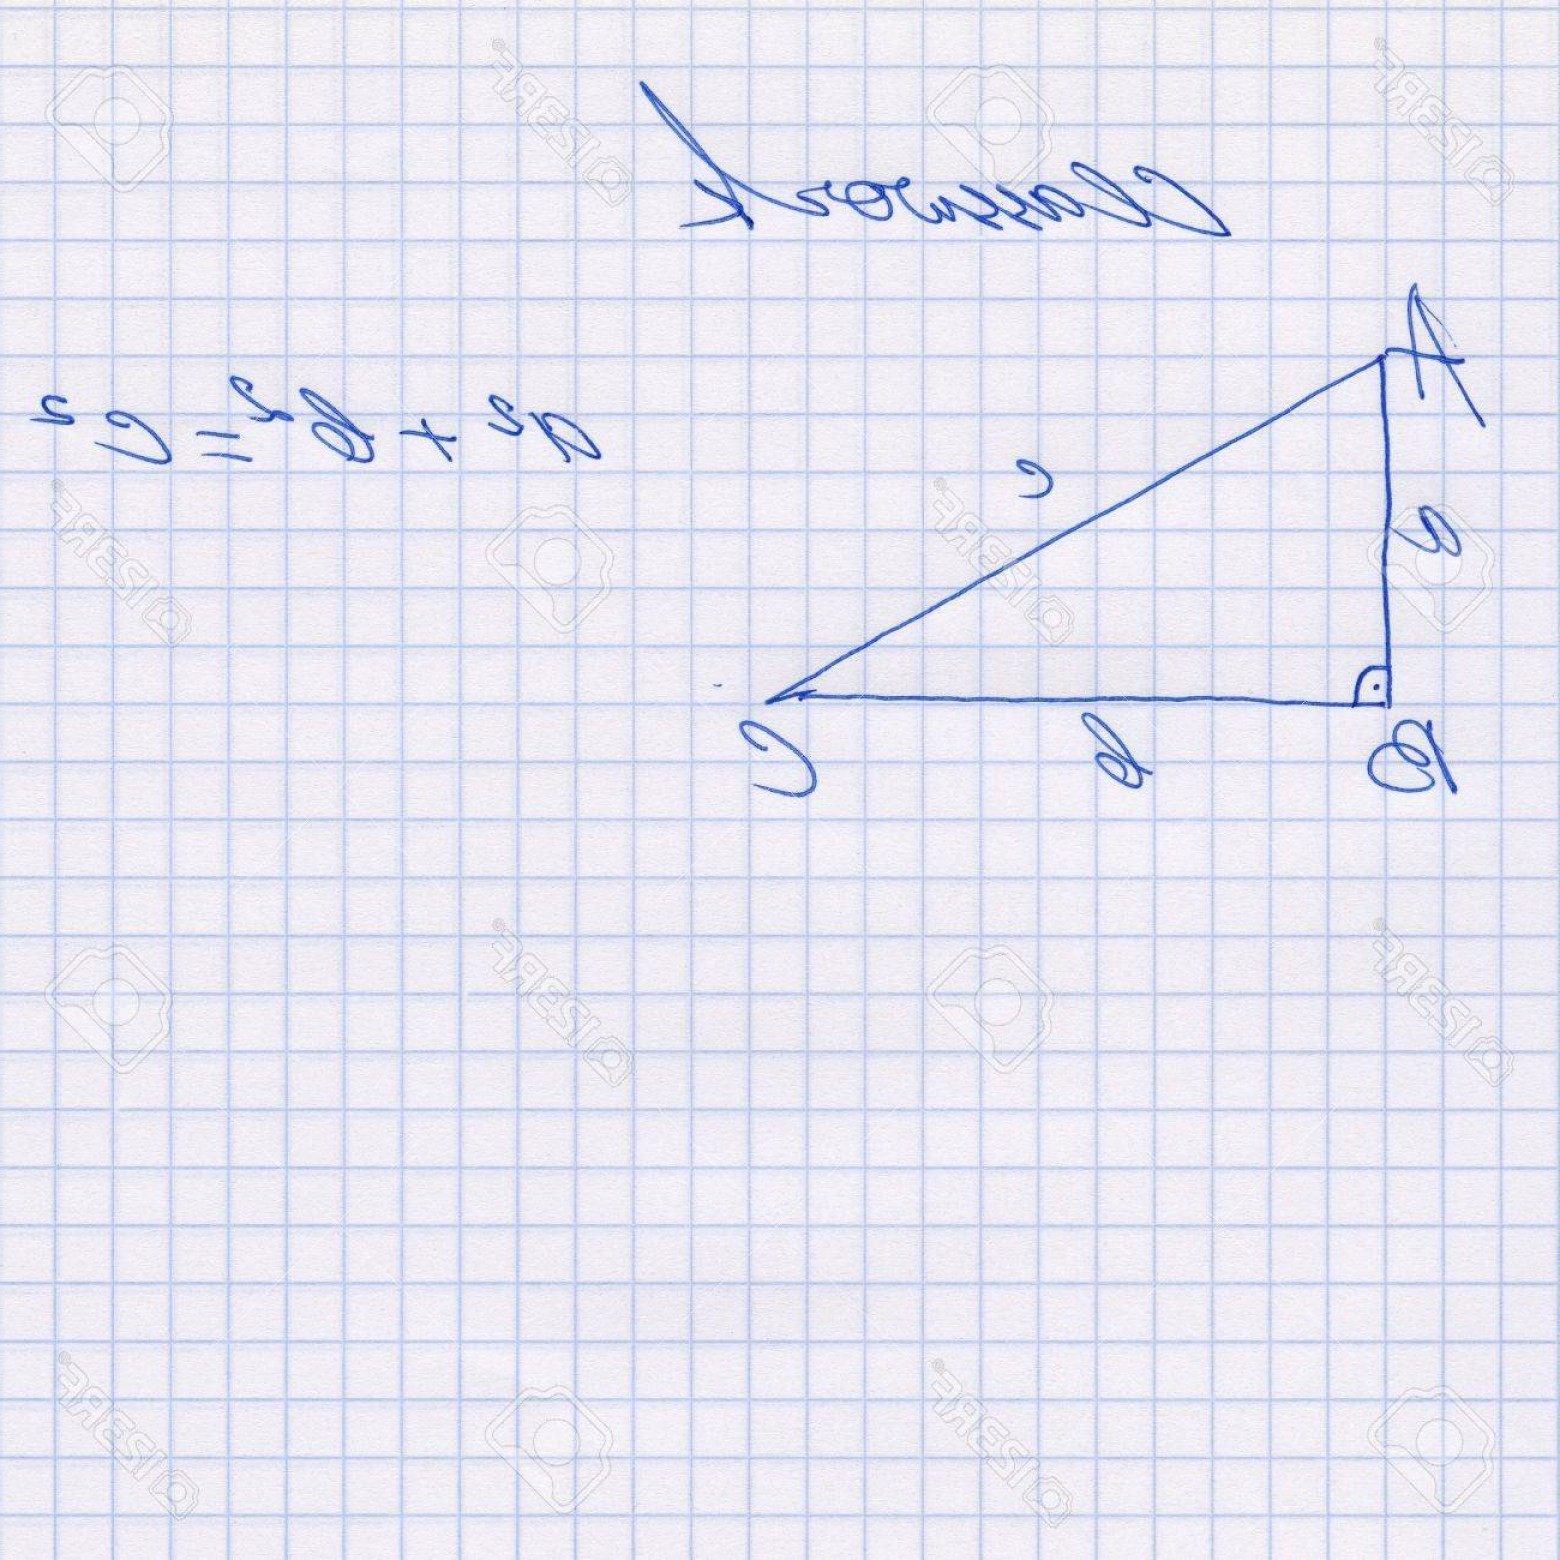 Vector Addition By Pythagoras Picture: Photopythagoras Rule Explained In The Exercise Book Pythagorean Theorem Sketched On The White Squared Pap